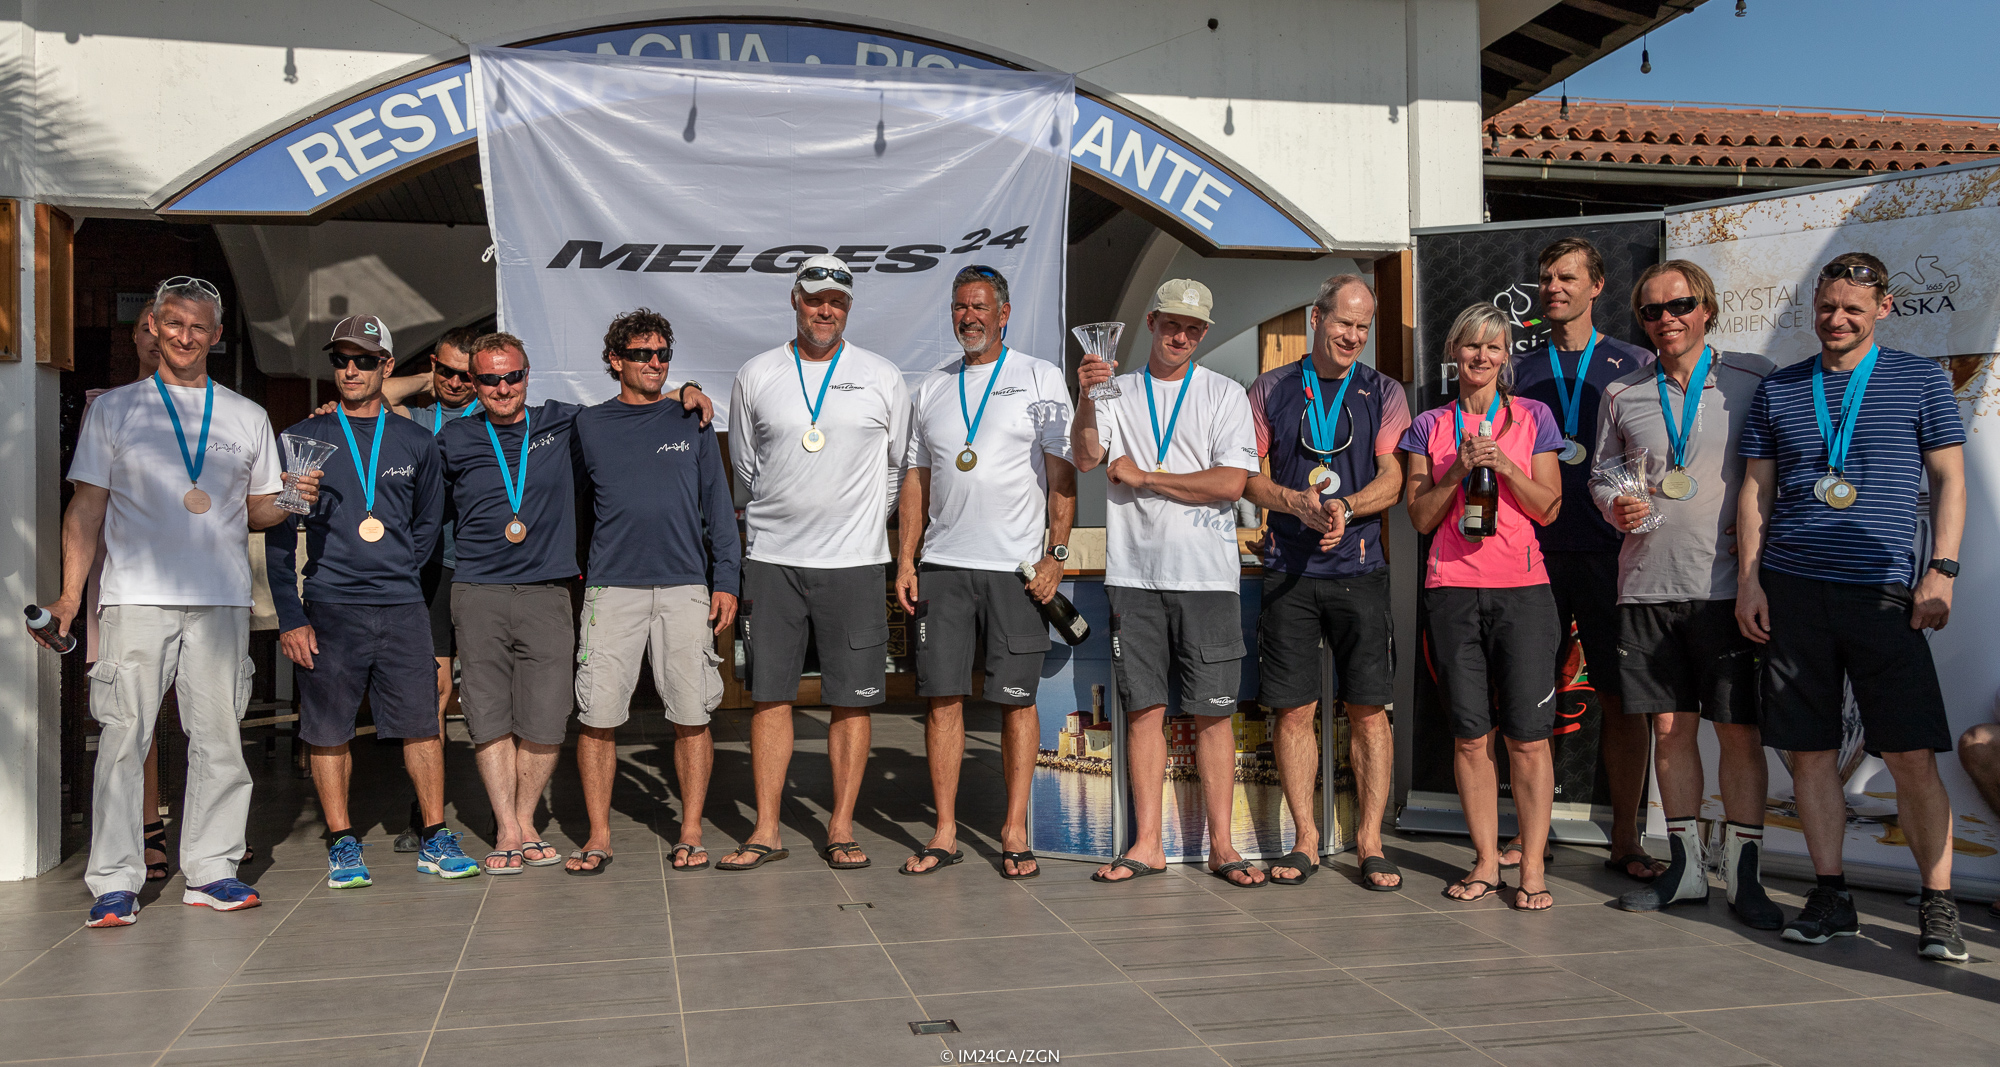 The overall Top 3 of the Marina Portoroz 2018 regatta